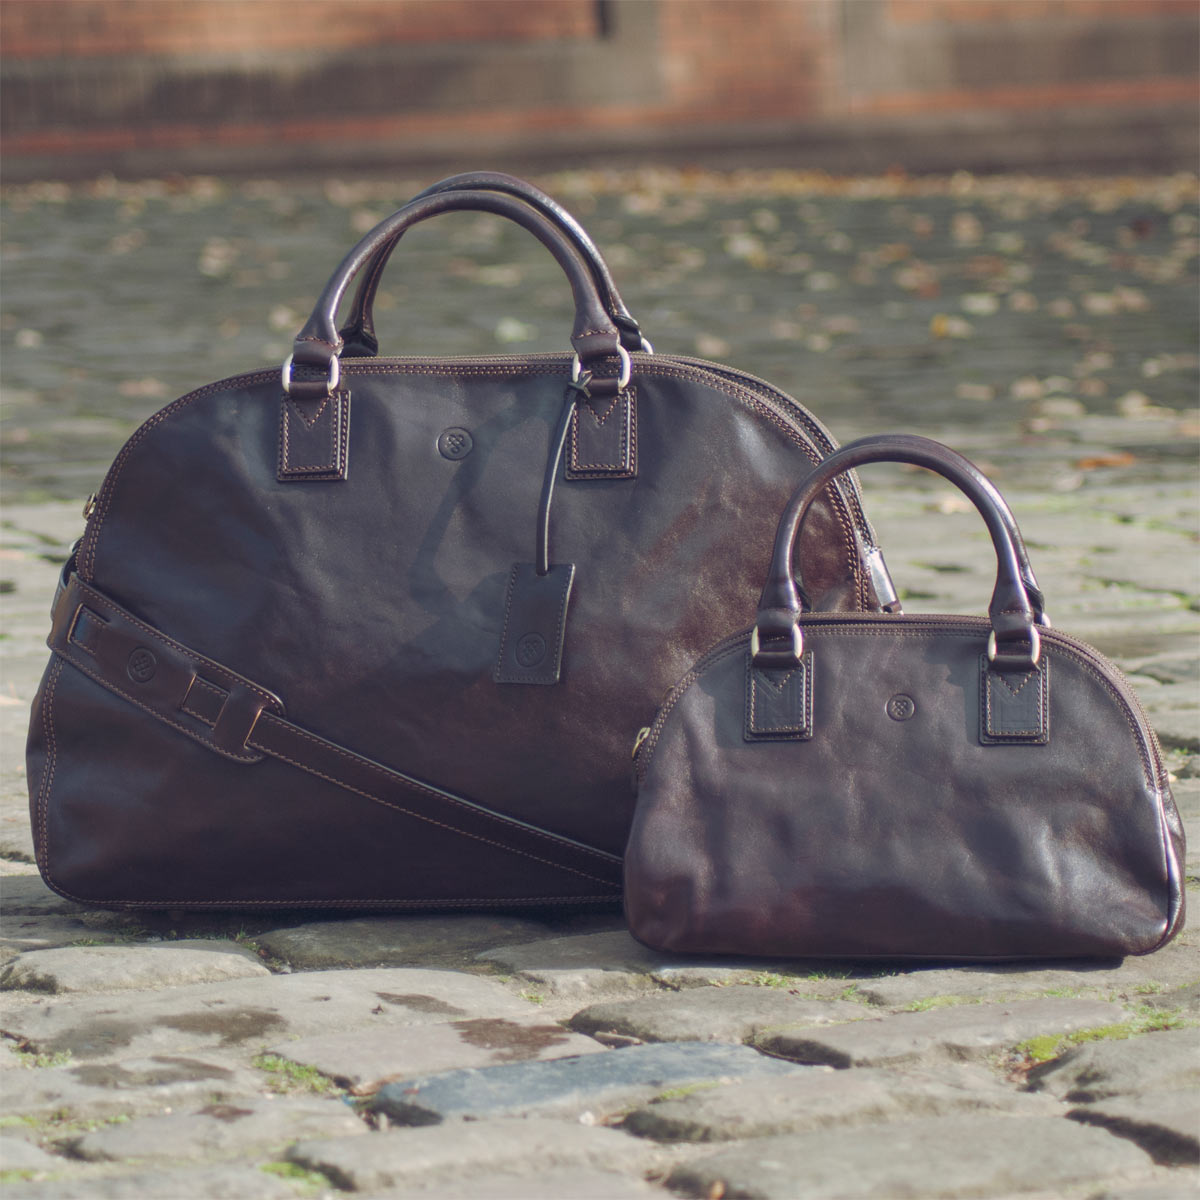 Image 8 of the 'Liliana' Dark Chocolate Veg-Tanned Leather Holdall